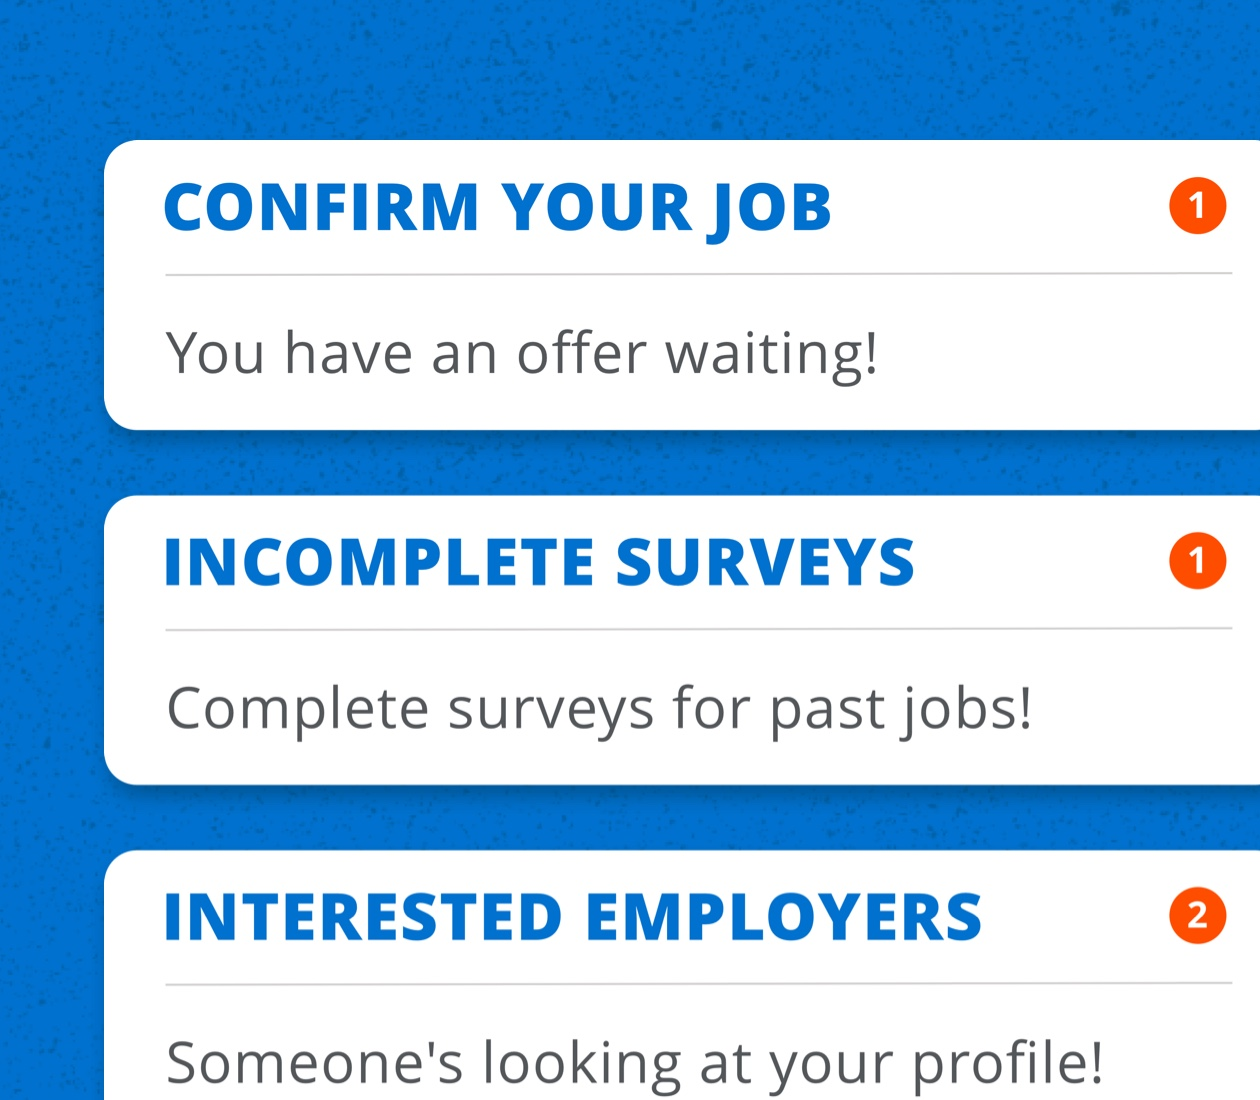 """Cards from the Tradeworthy Jobs app showing prompts such as """"confirm your job"""" or """"incomplete surveys"""""""